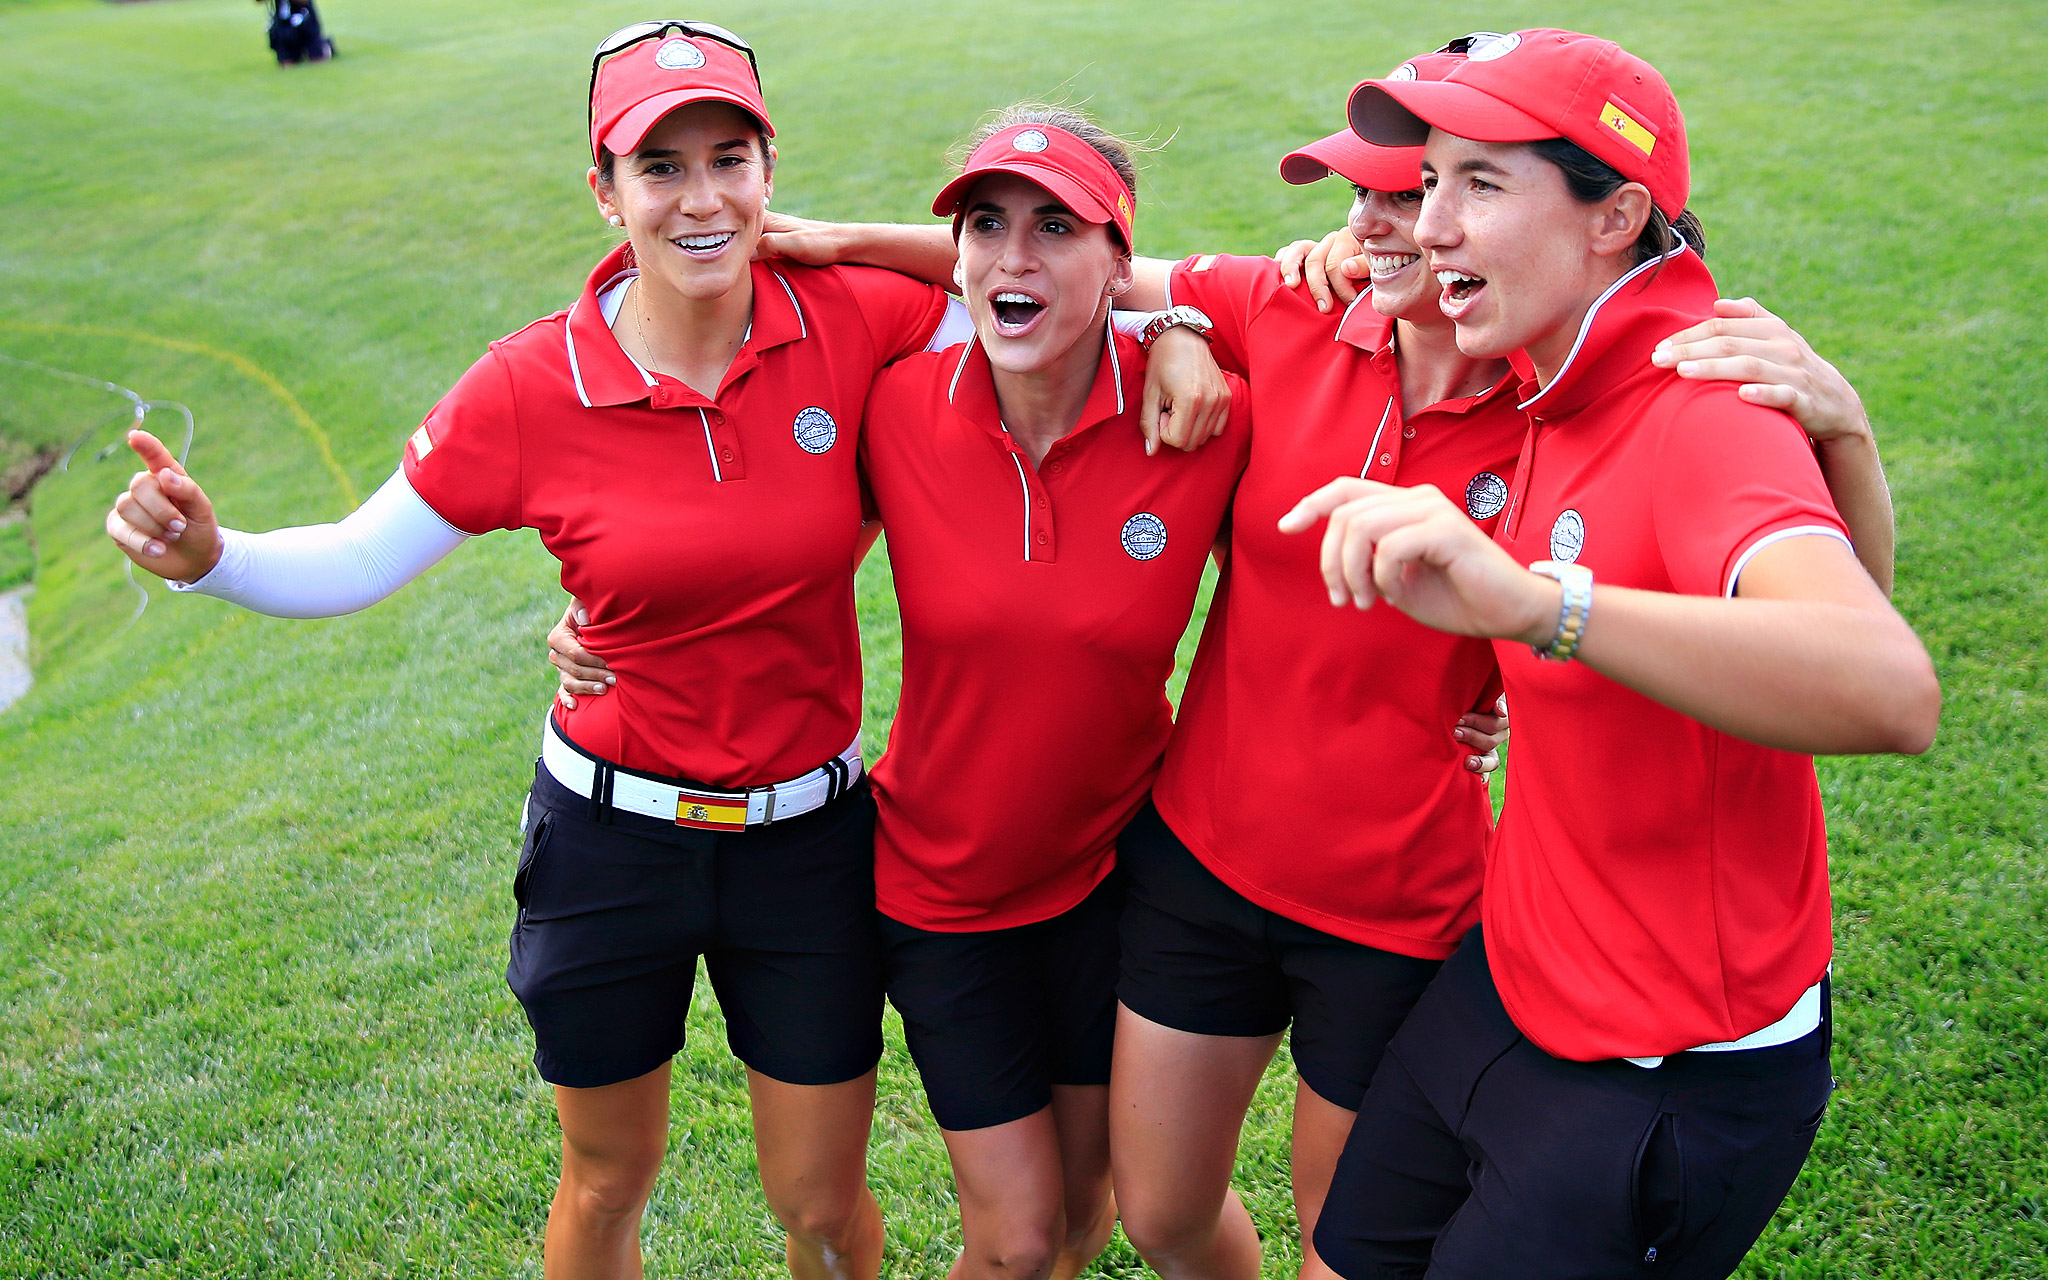 From left: Spain's Azahara Munoz, Belen Mozo, Beatriz Recari and Carlota Ciganda celebrate after winning the International Crown in Owings Mills, Maryland. Spain won all four of its singles matches in the final round to win the coveted trophy.